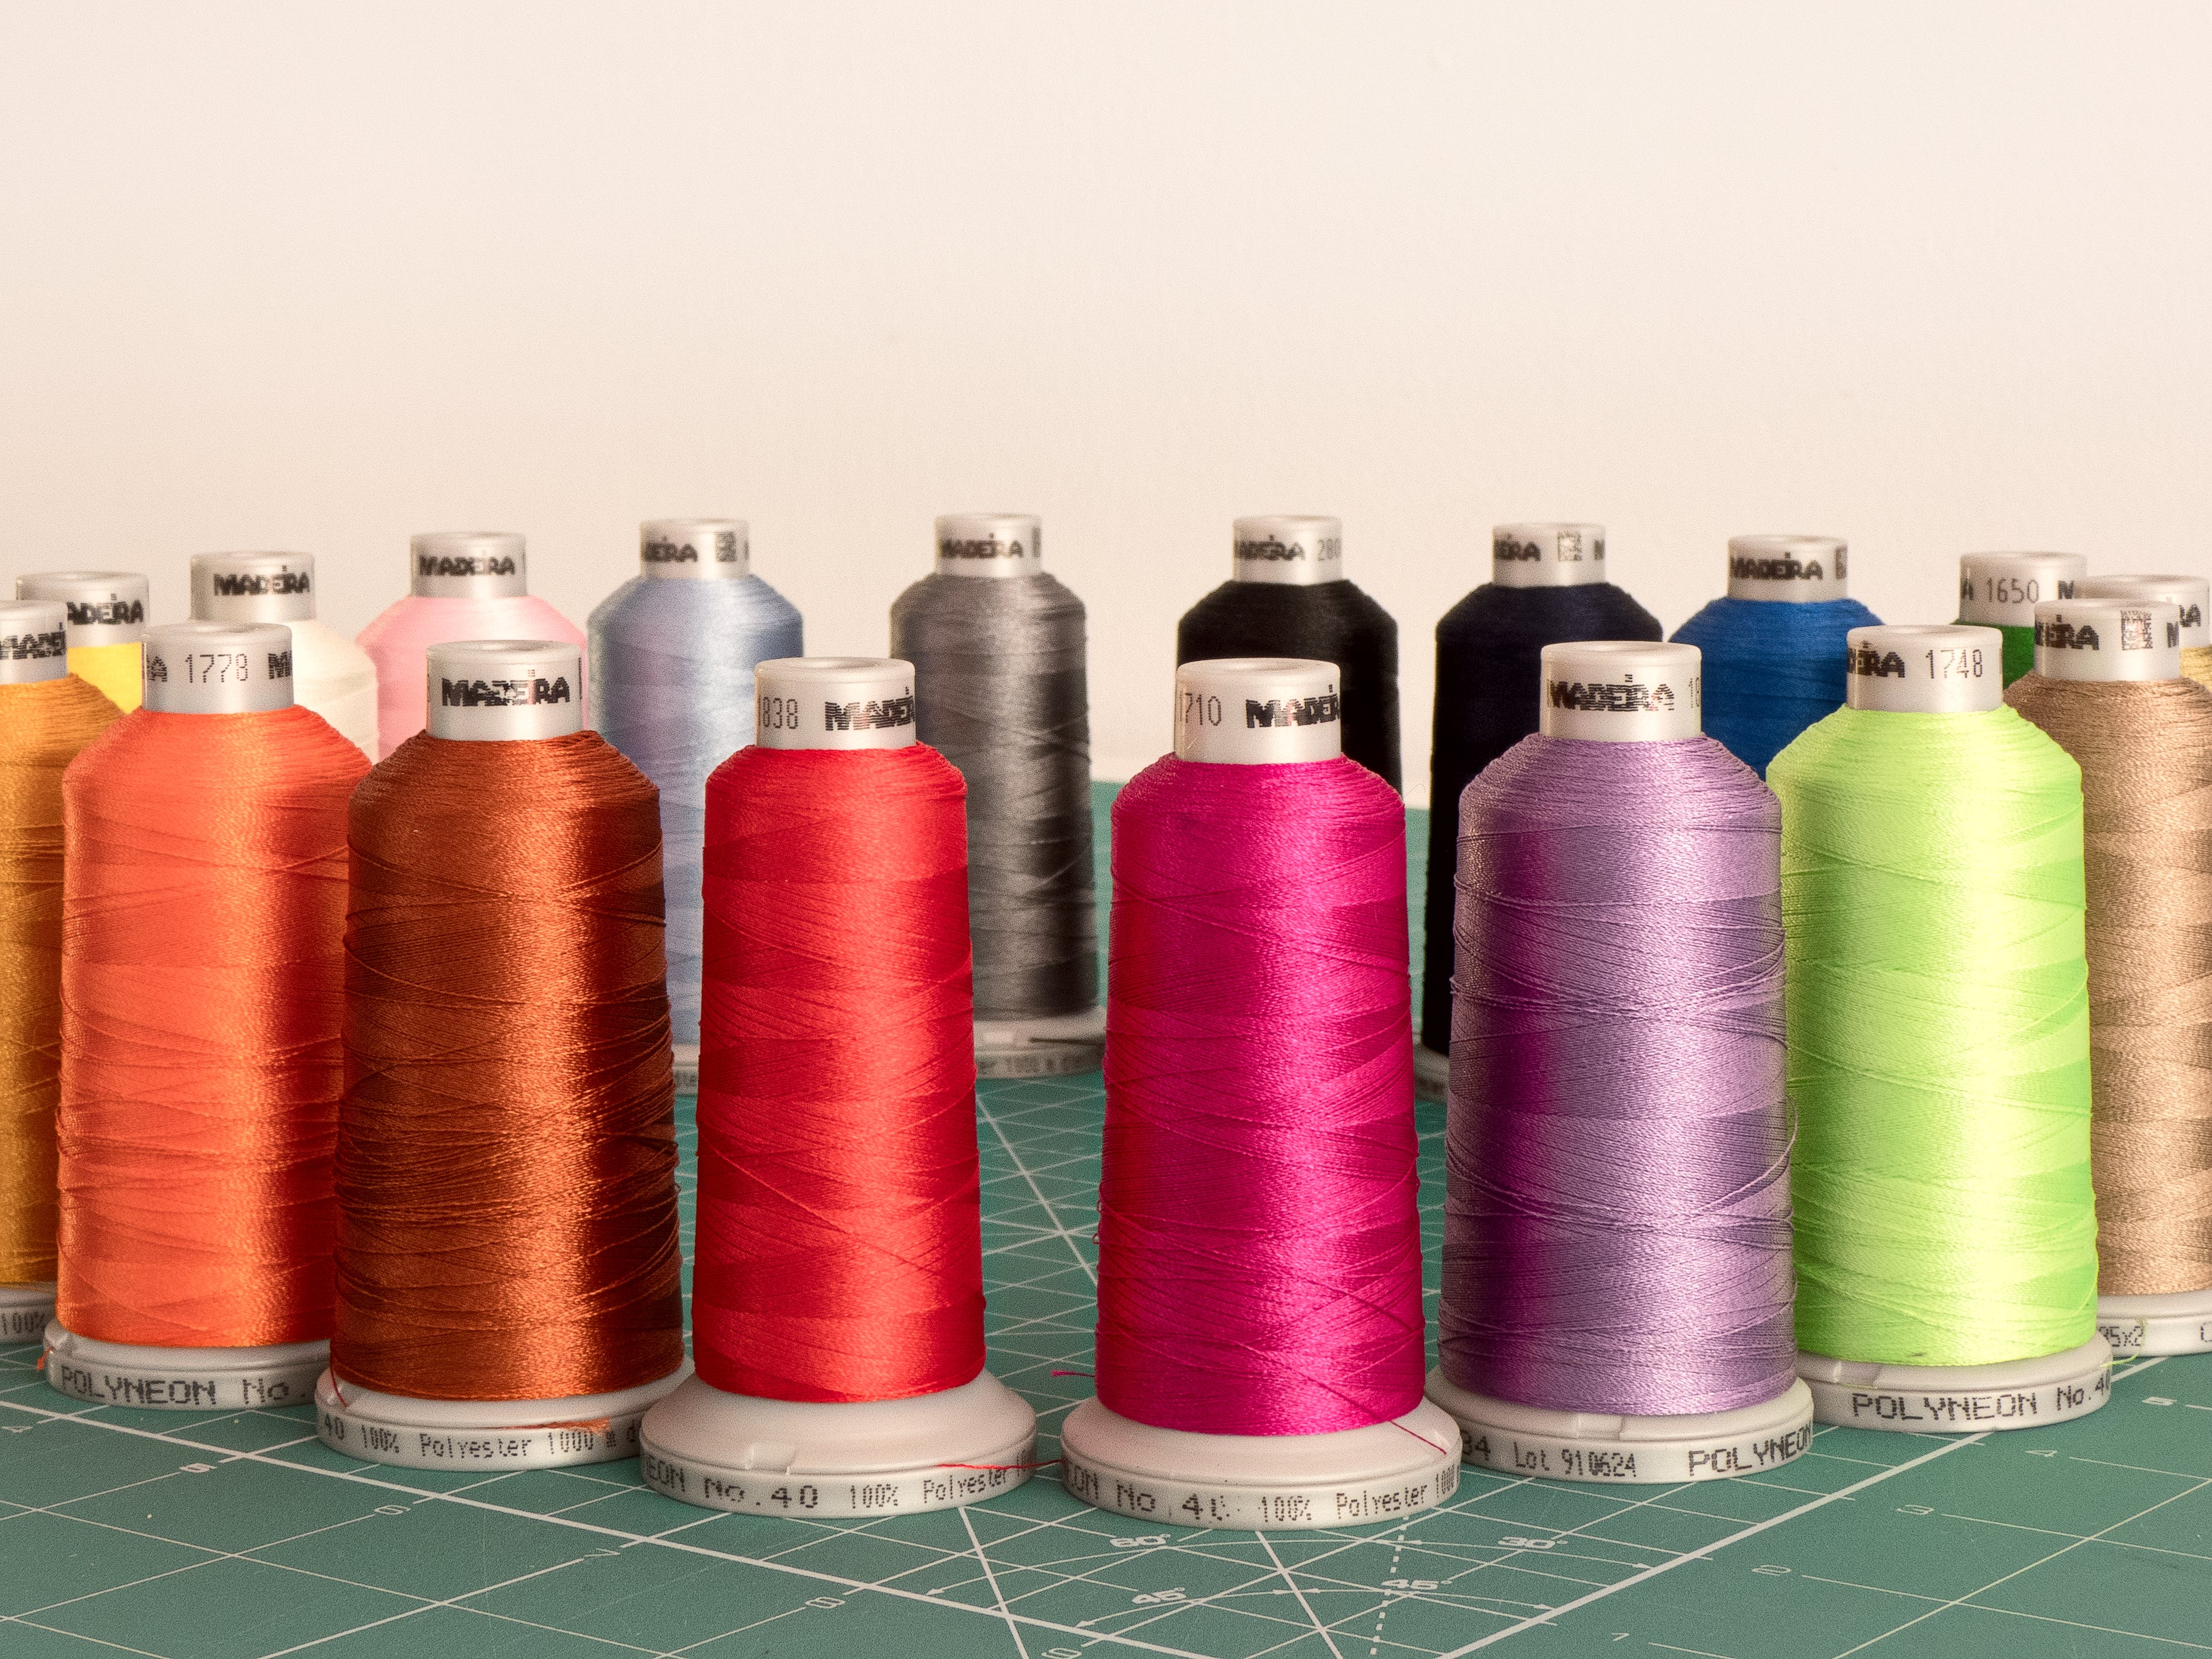 Assorted Sewing Threads on Greensurface